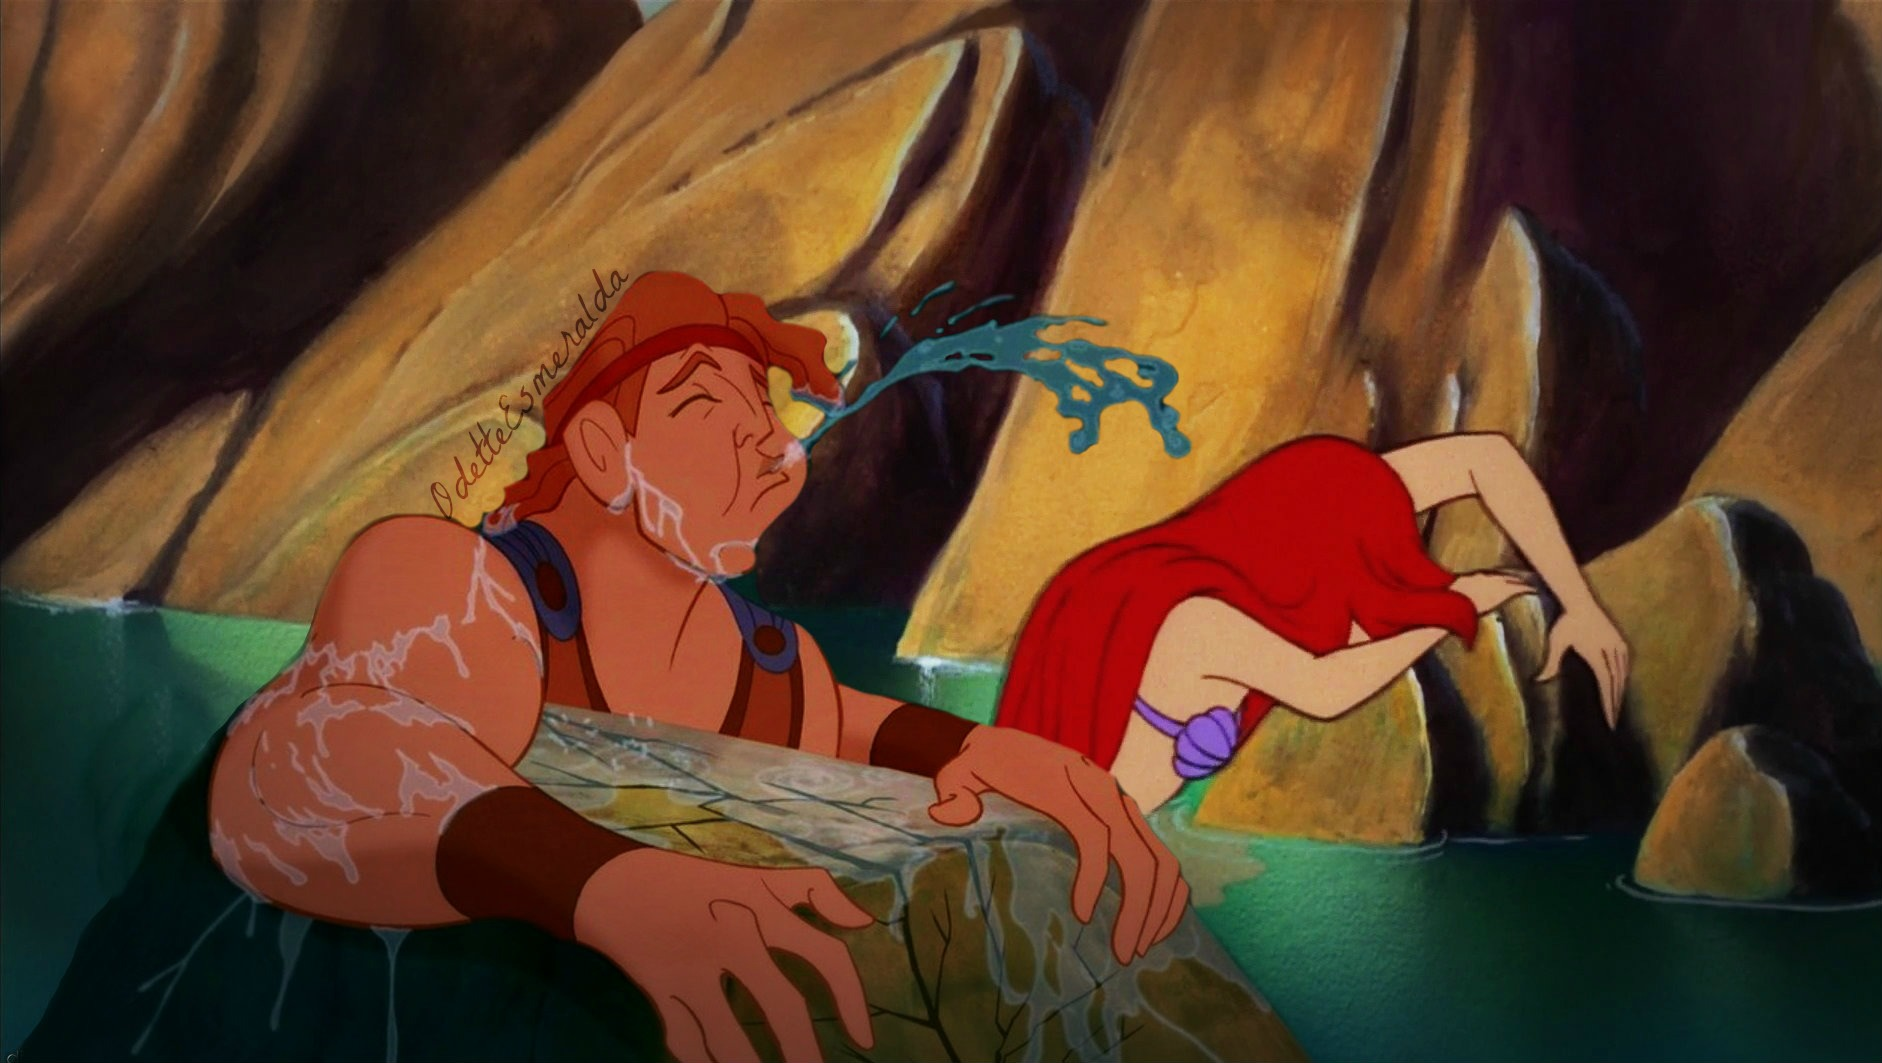 Hey guys, check it the daughter of Triton (Poseidon) and the son of Zeus! Awkward red-headed cousins for life man.